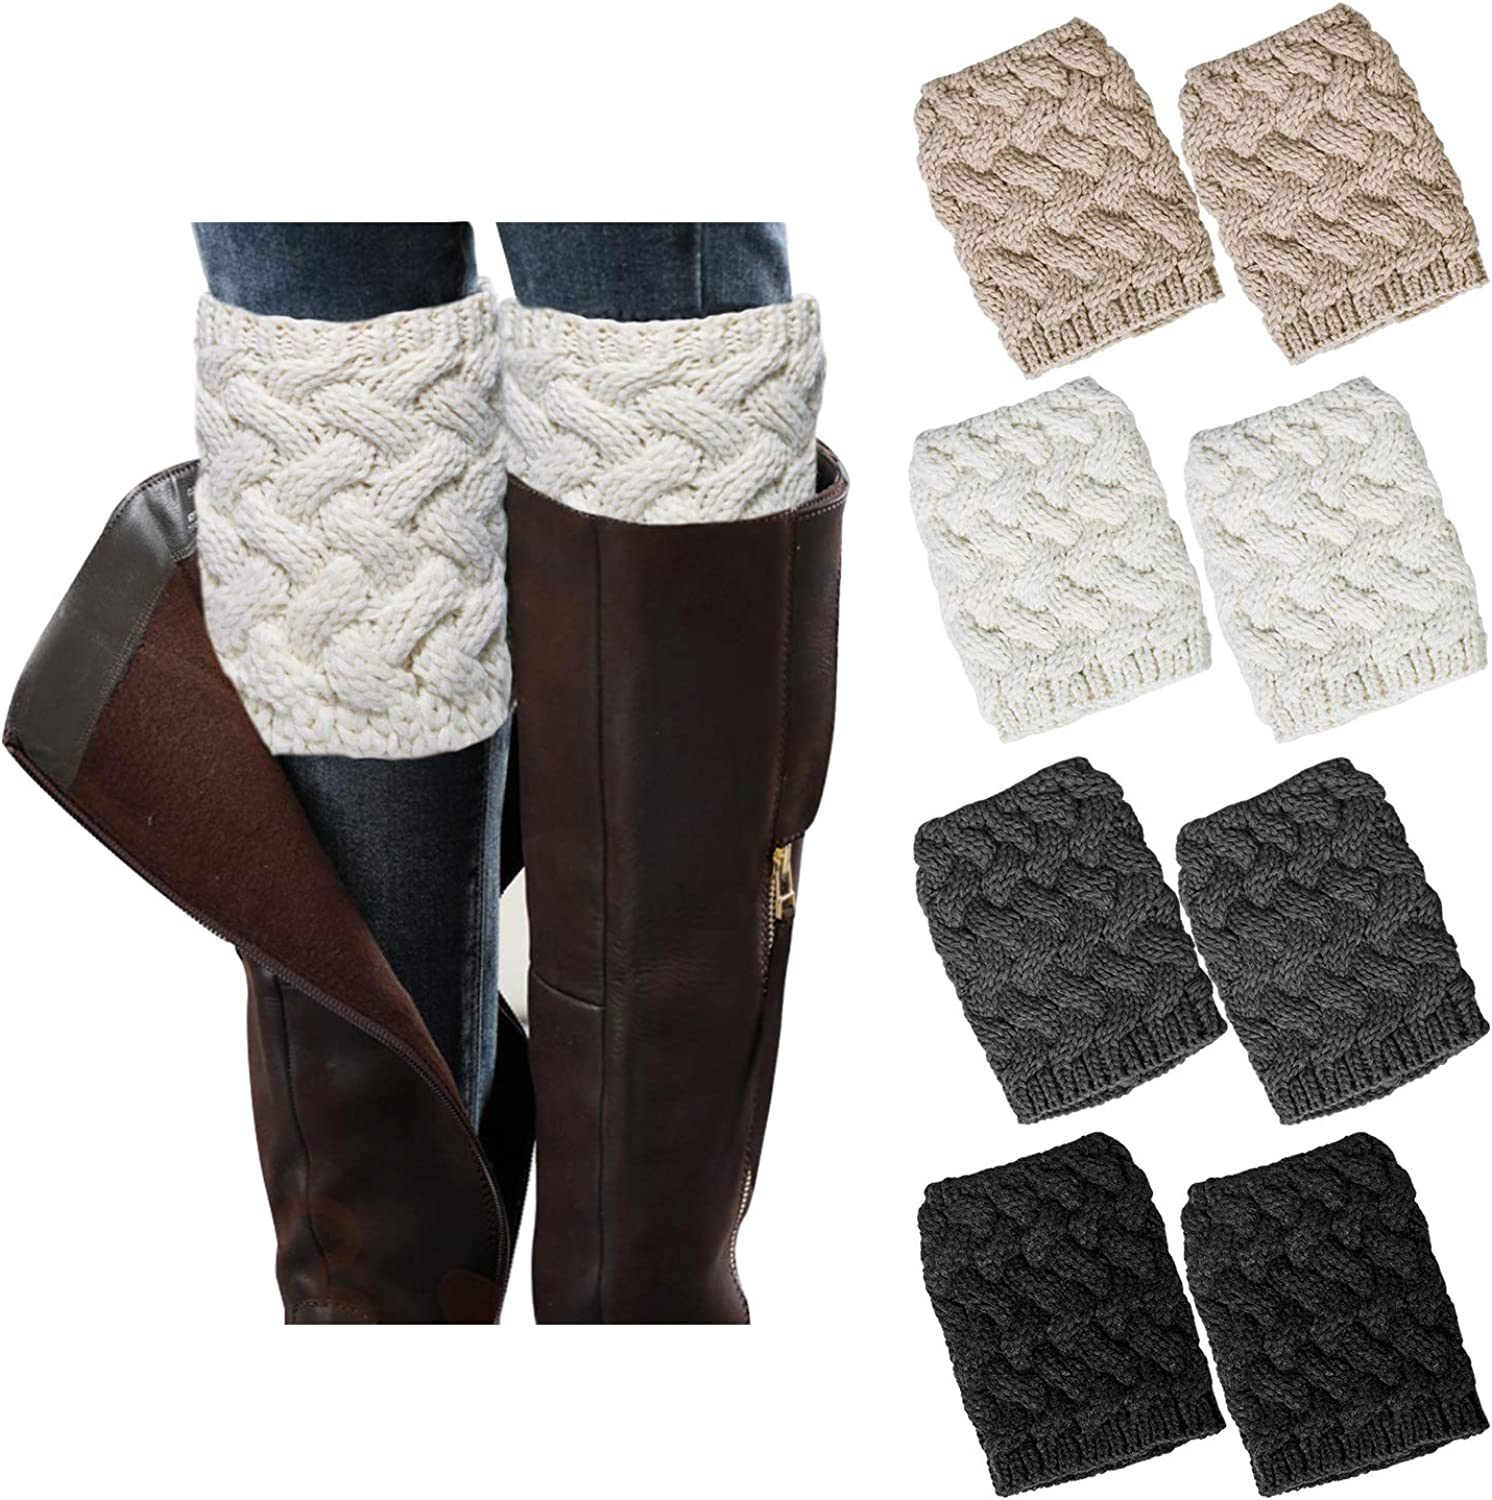 Pair of Women/'s Knitted Boot Cuffs Toppers Short Ankle  Shin Leg Warmers